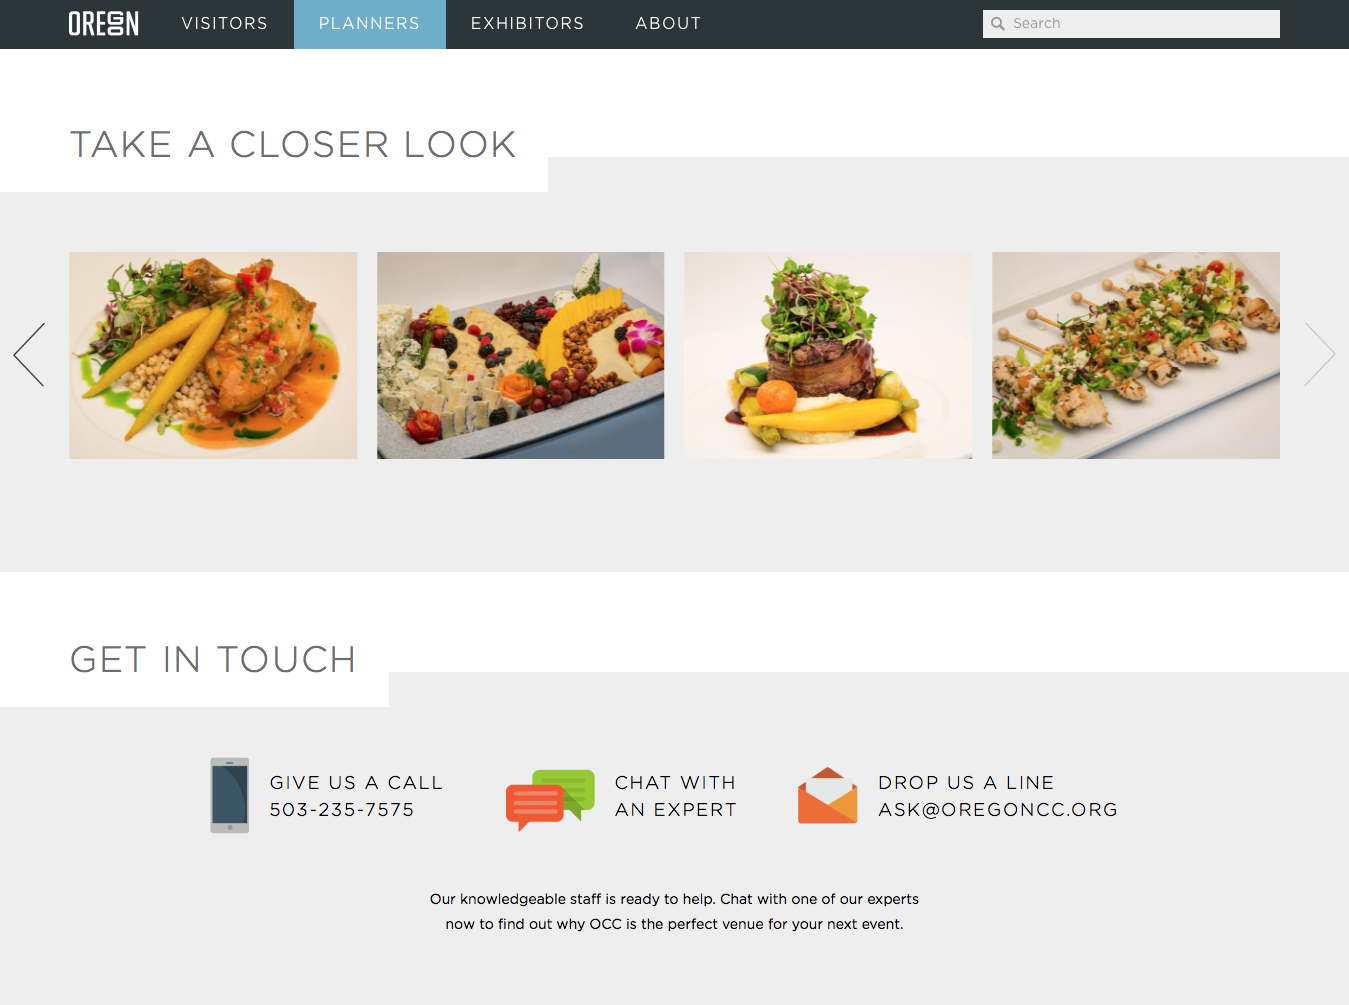 Screenshot: Food images for event planners